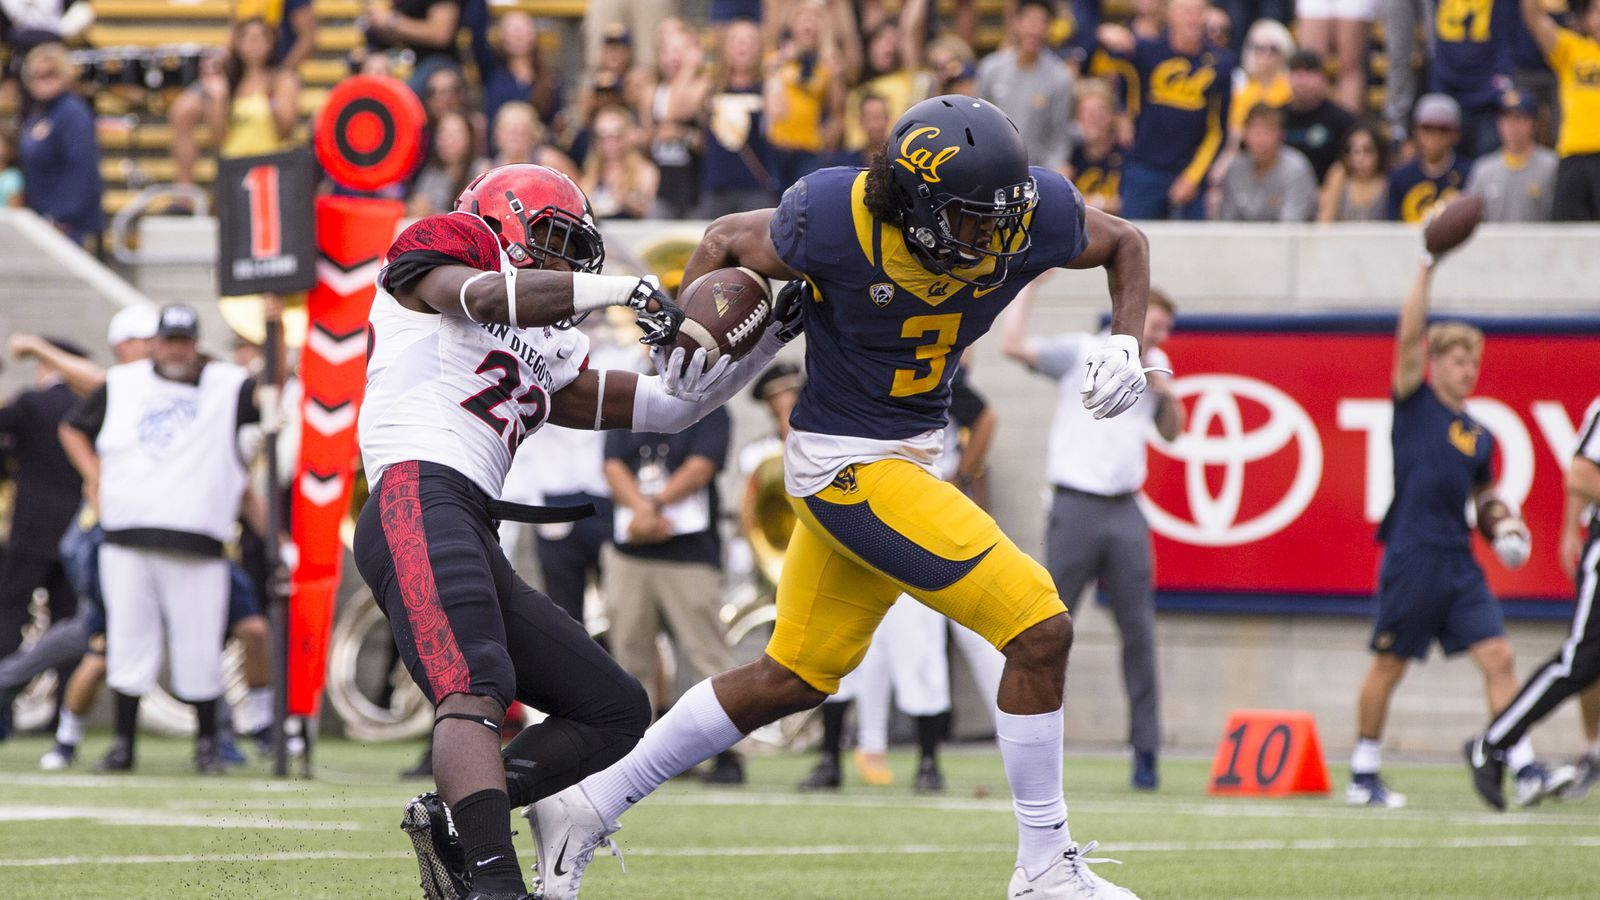 Former Cal wide receiver Demetris Robertson is set to announce his landing spot this Saturday after announcing June 21 his decision to transfer from the